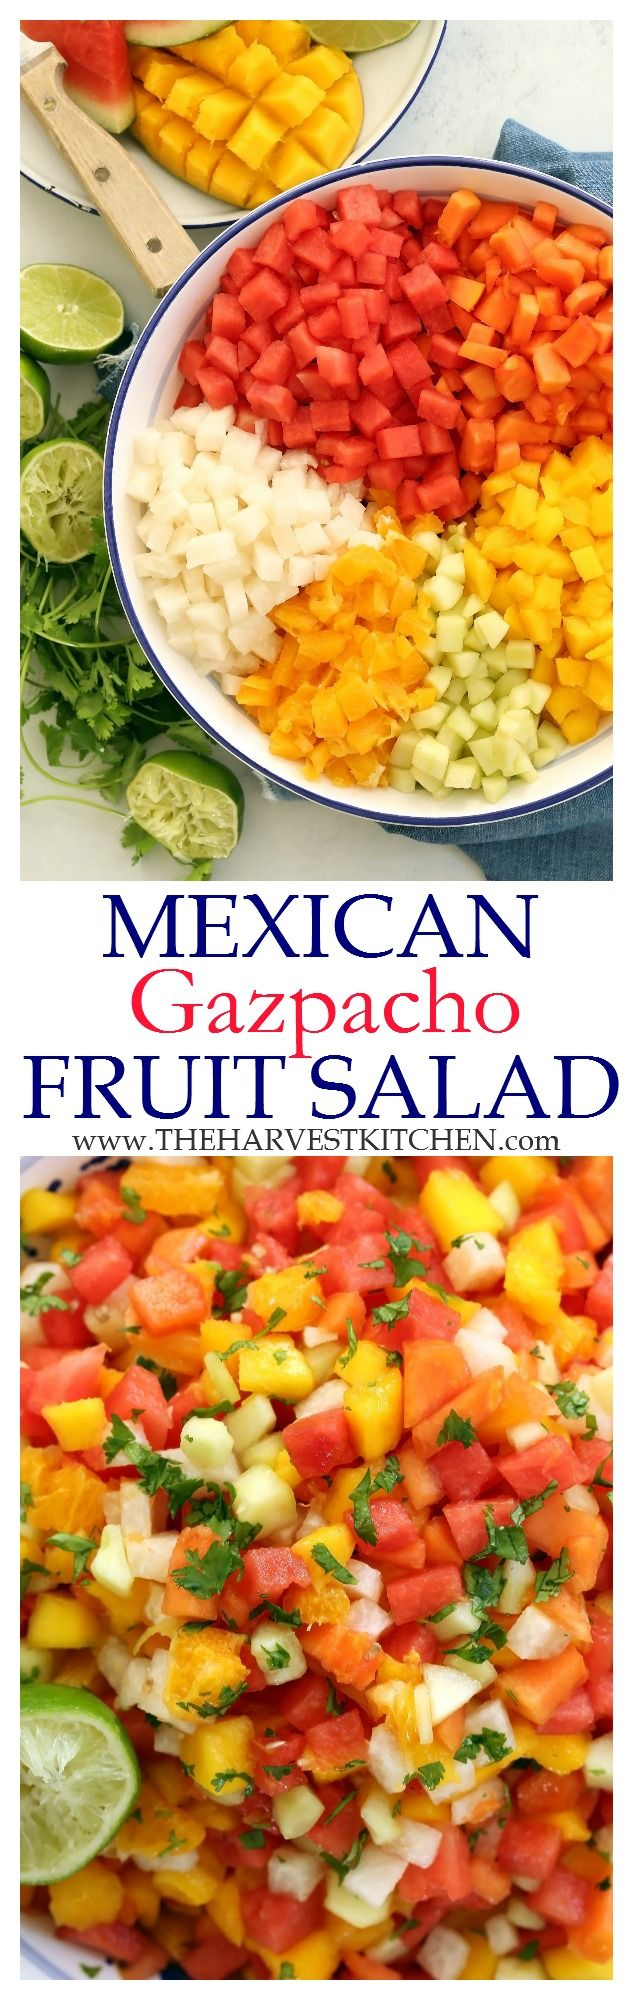 This Mexican Gazpacho Fruit Salad is refreshing and light and it makes a perfect summer fruit salad for barbecues, potlucks and dining al fresco. | healthy recipes | | clean eating | | detox recipes | | detox salad recipes |